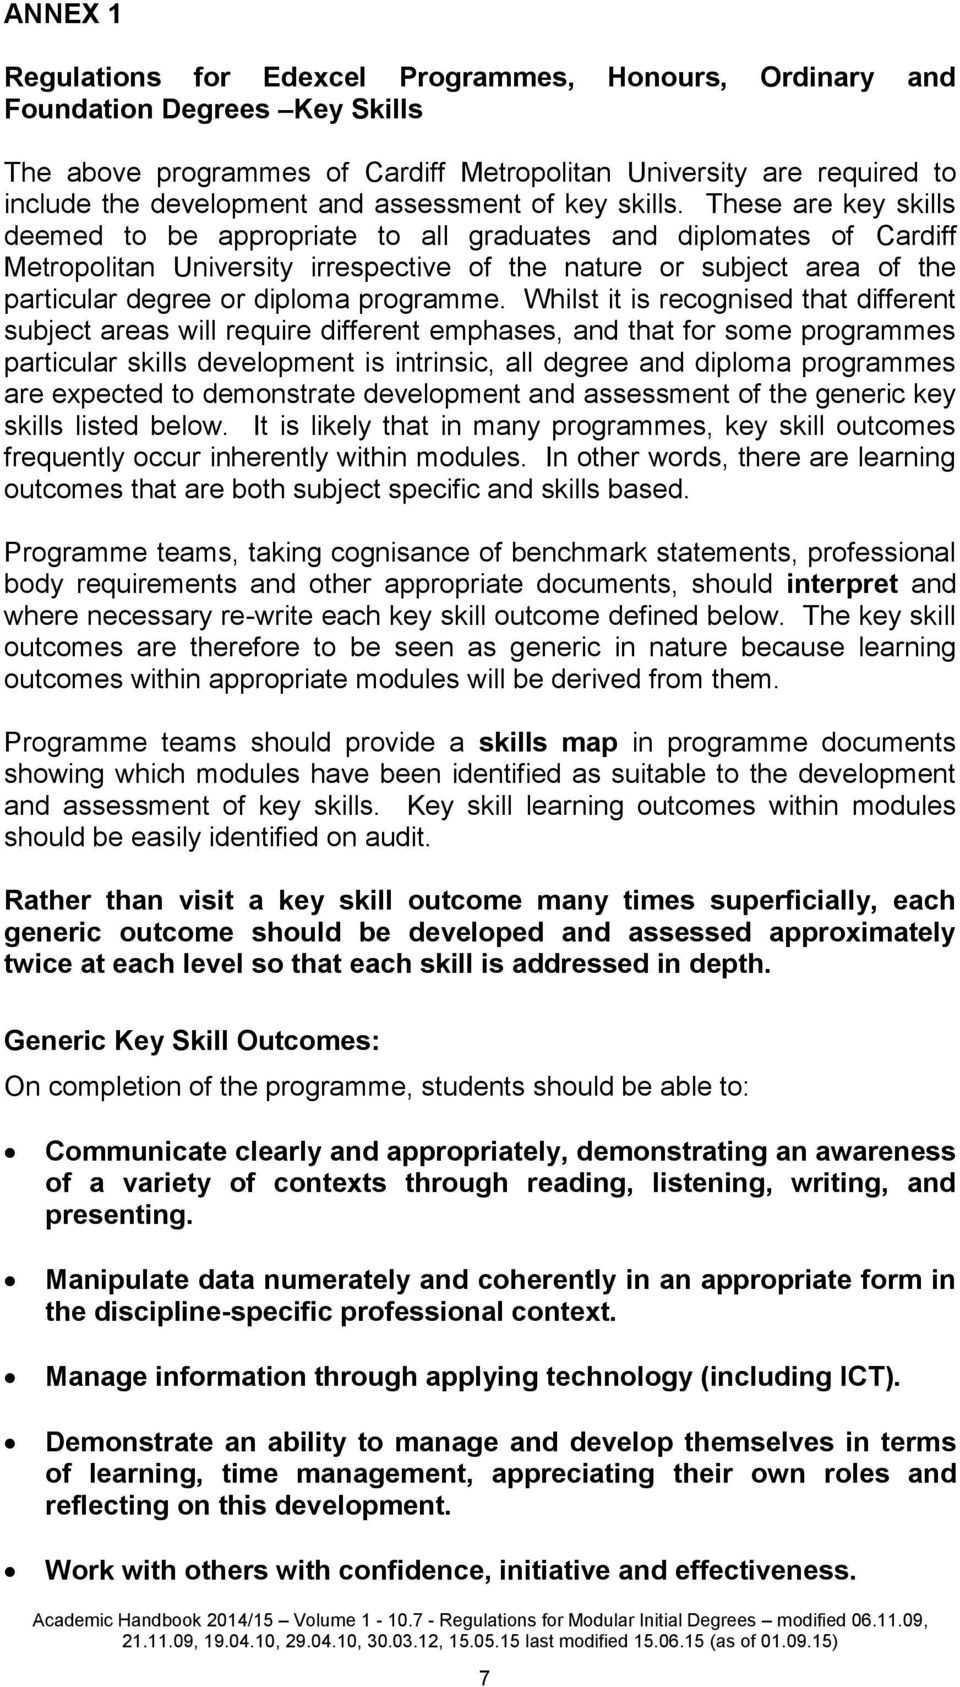 These are key skills deemed to be appropriate to all graduates and diplomates of Cardiff Metropolitan University irrespective of the nature or subject area of the particular degree or diploma